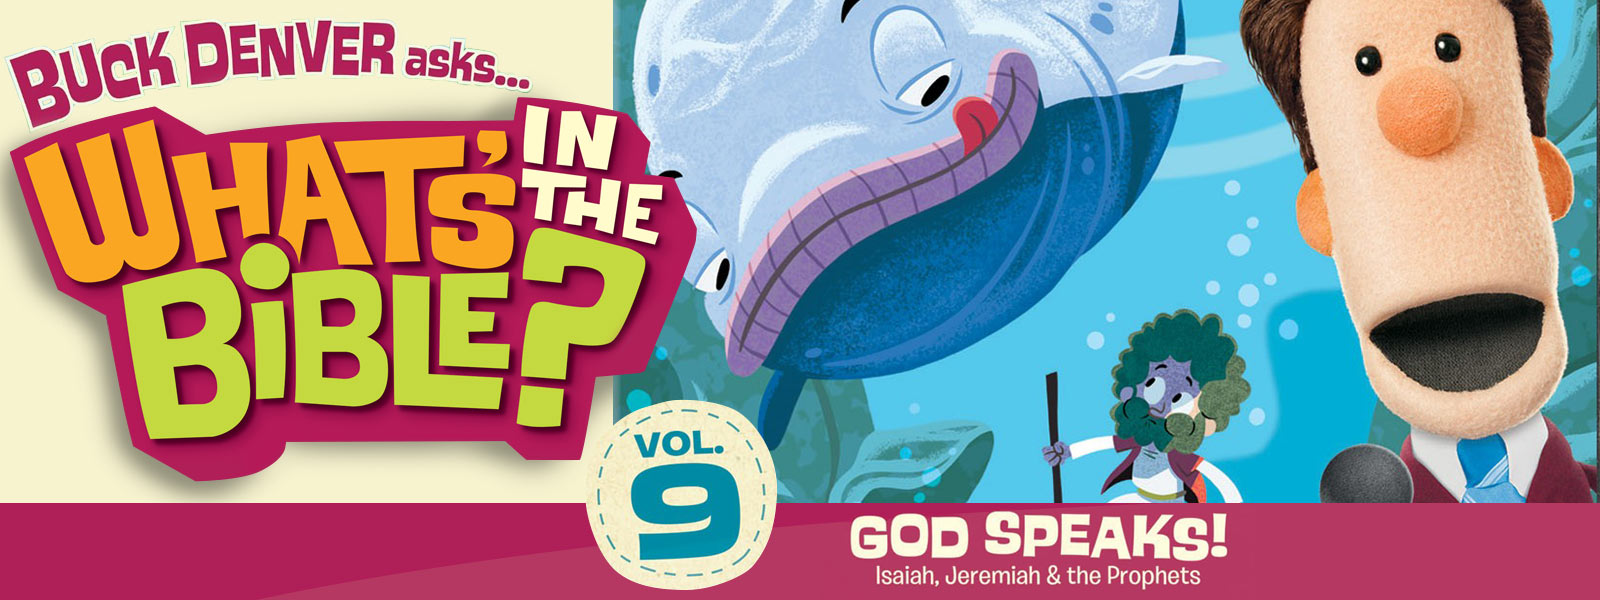 RightNow Media :: Streaming Video Bible Study : What's In The Bible? Vol. 9  God Speaks! : Phil Vischer : Jellyfish Labs